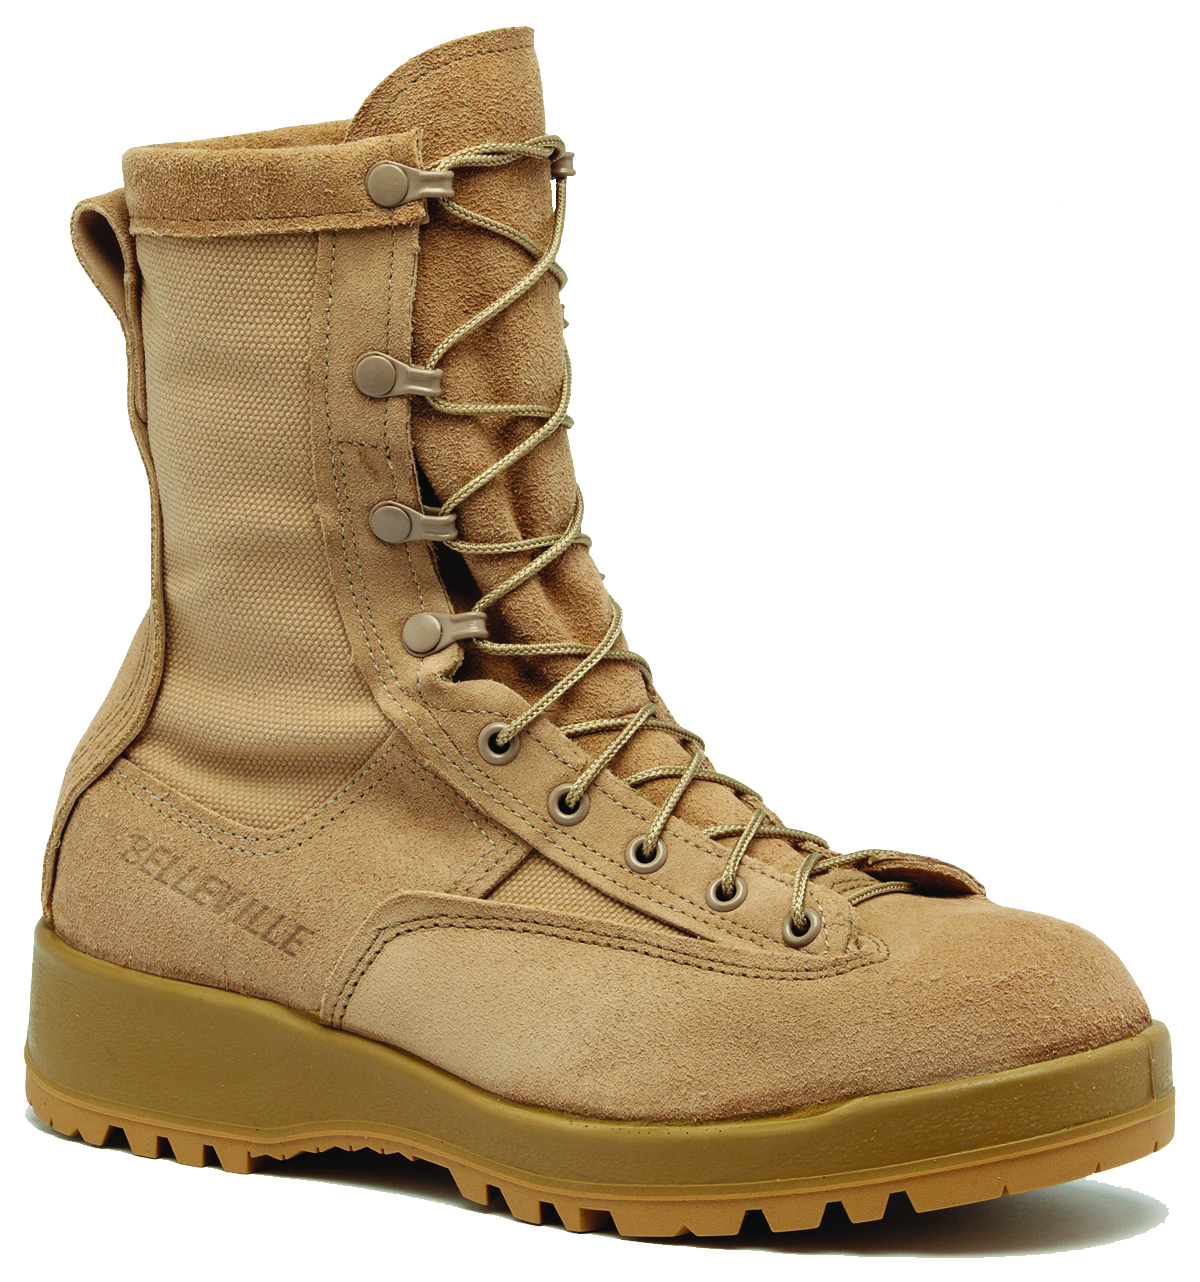 a6791f19325 Belleville 790 Waterproof Flight and Combat Boot